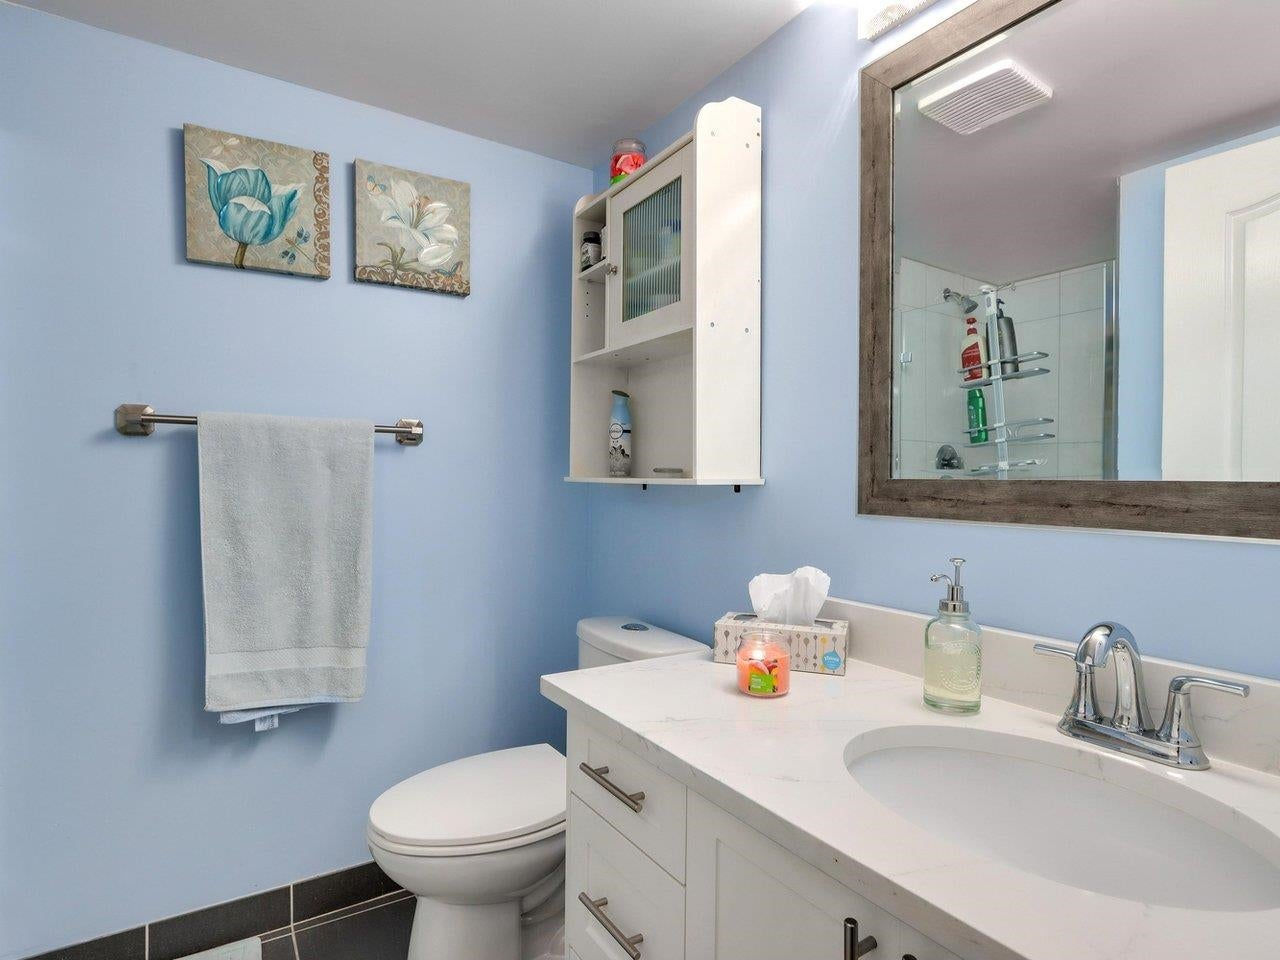 302 412 TWELFTH STREET - Uptown NW Apartment/Condo for sale, 2 Bedrooms (R2625659) - #12